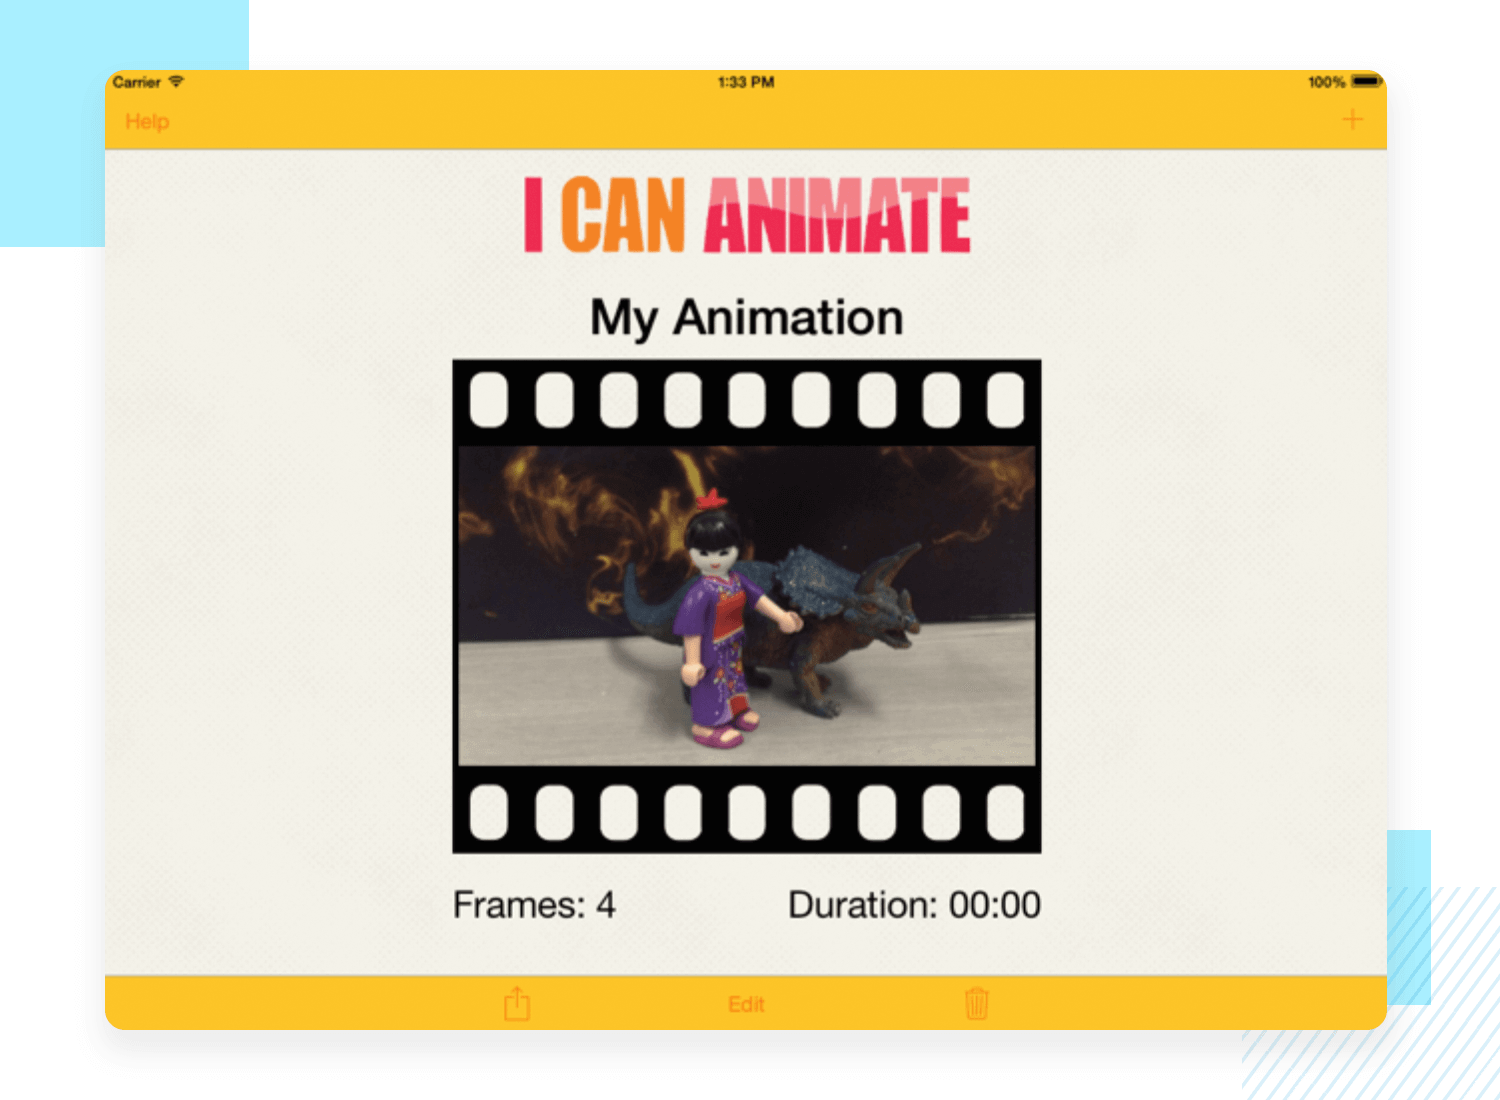 Animation apps for mobile - I Can Animate